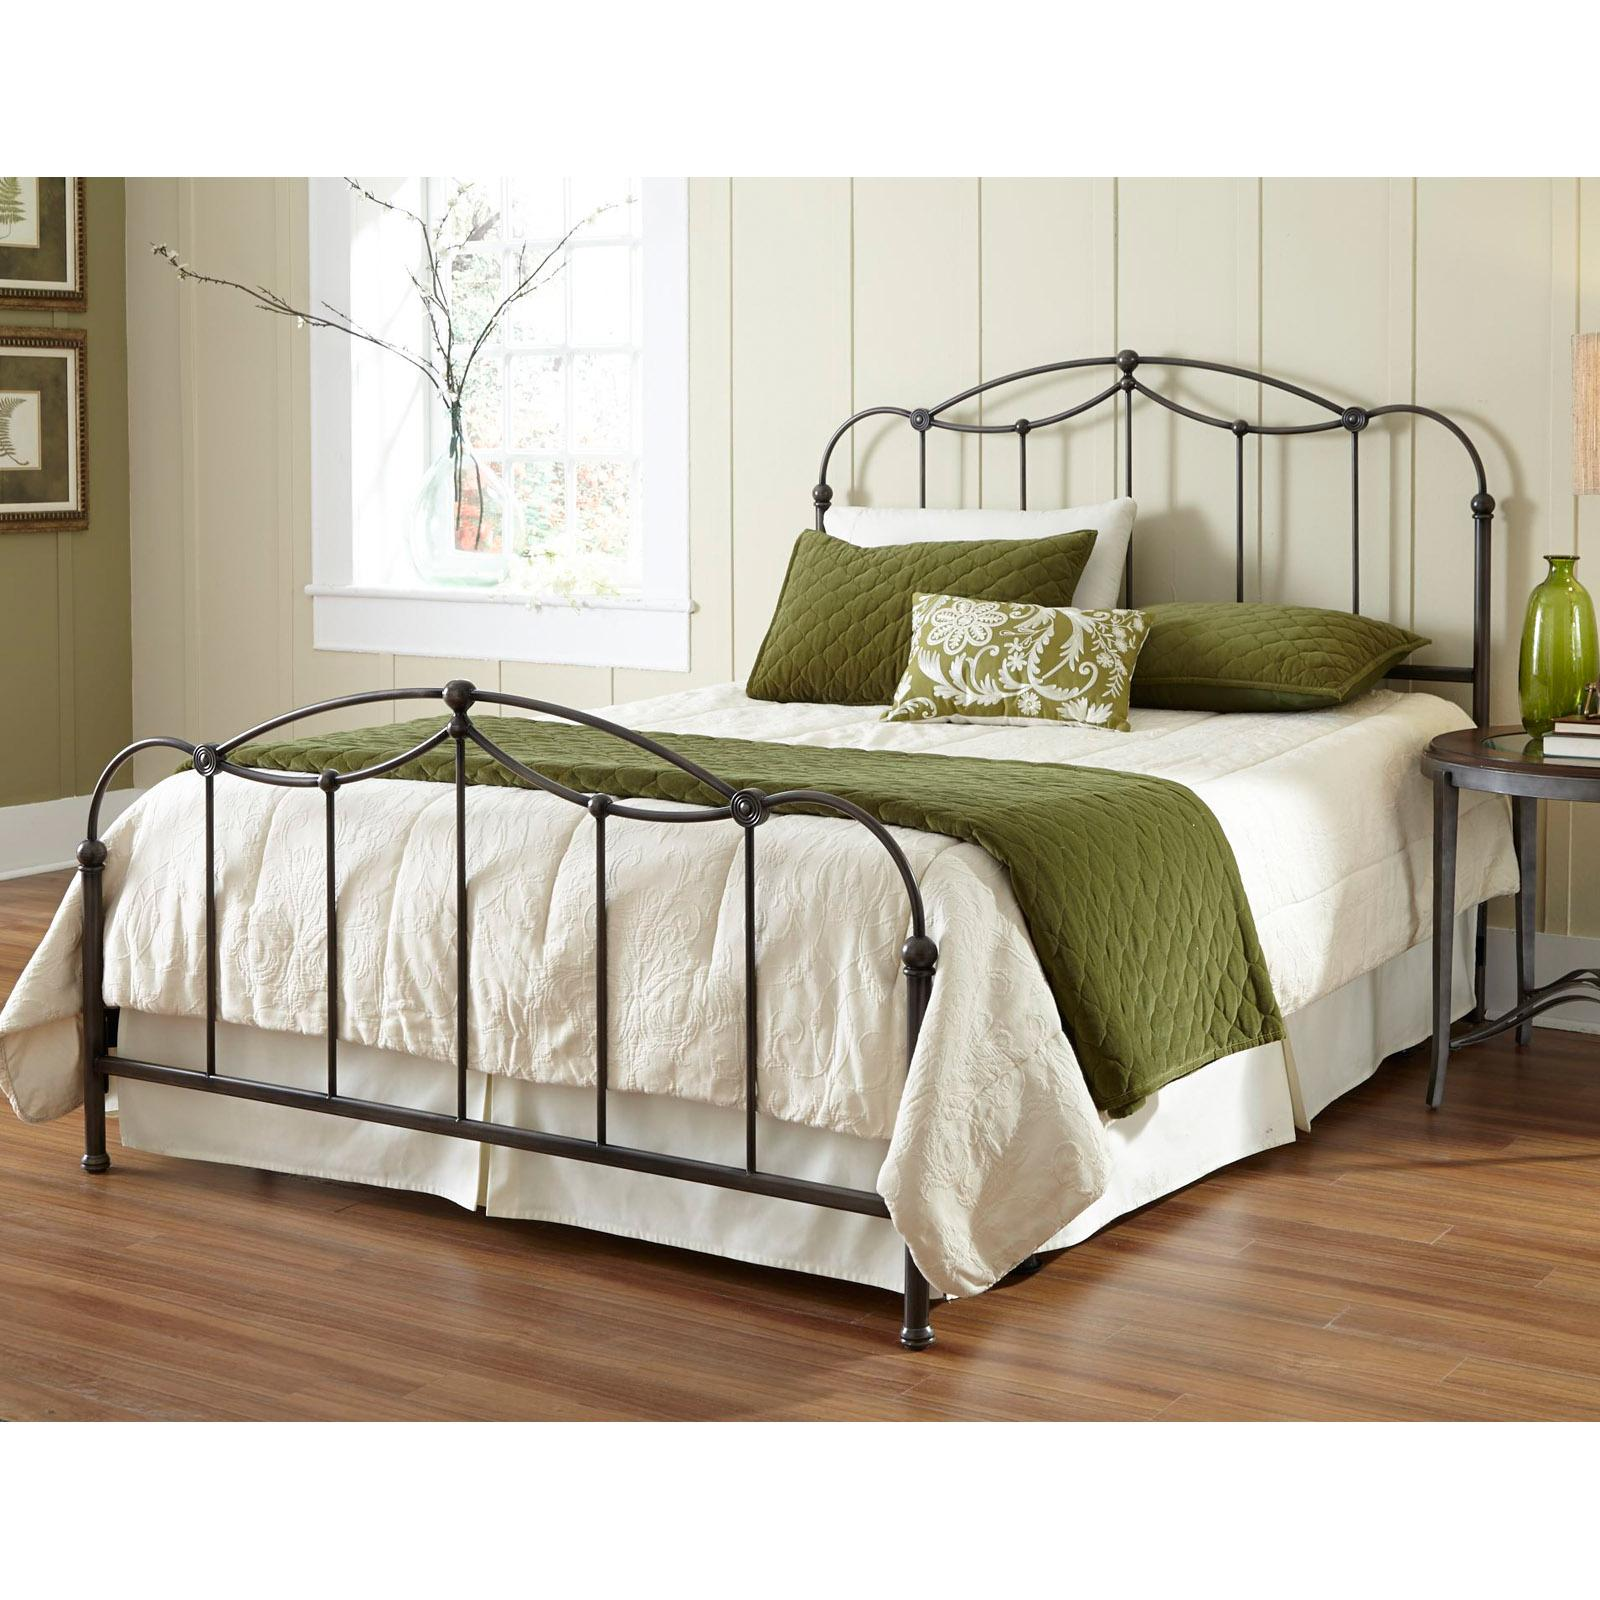 Fashion Bed Group Affinity Metal Standard Bed - B11276